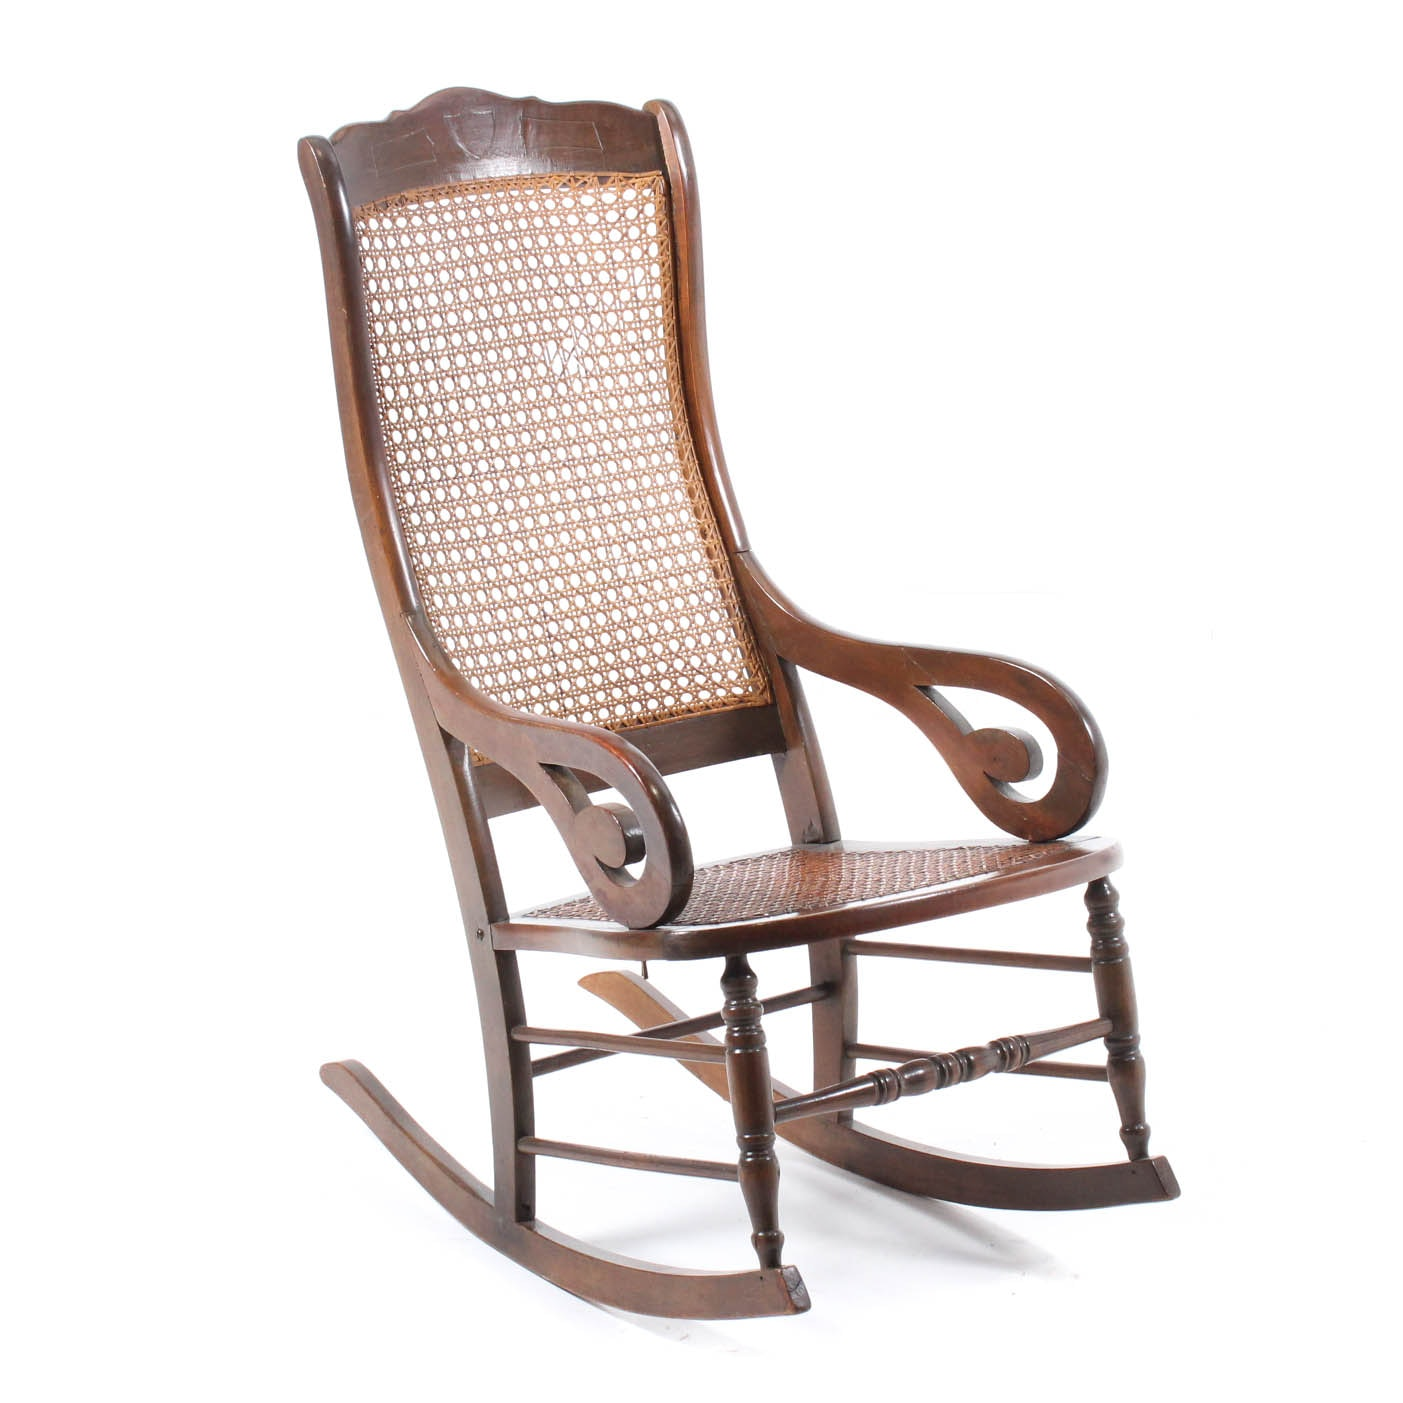 Vintage Rocker with Caned Seat and Back